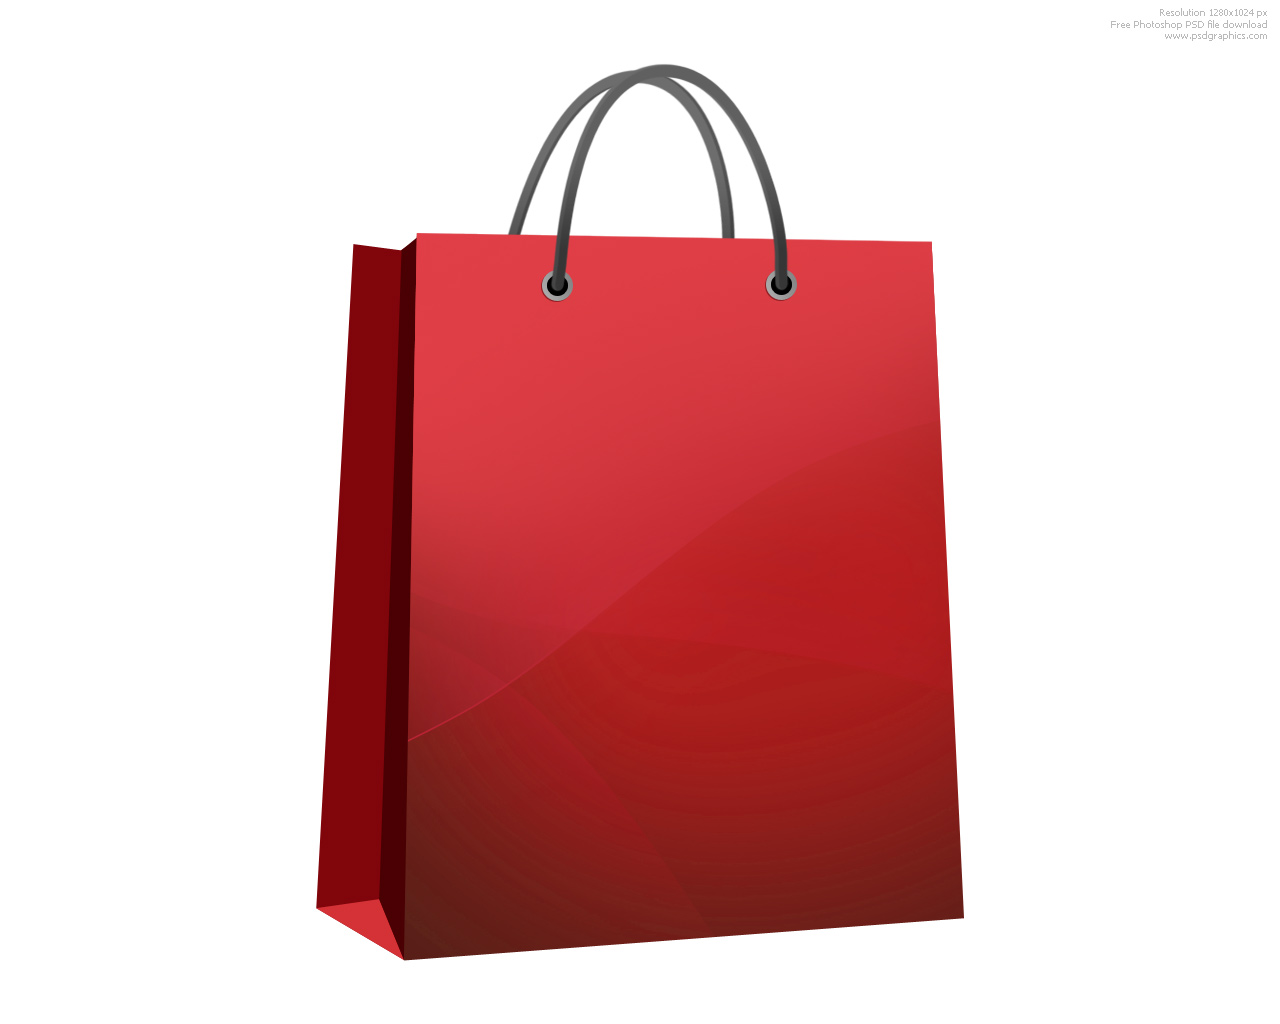 Shopping Bag Clip Art - ClipArt Best